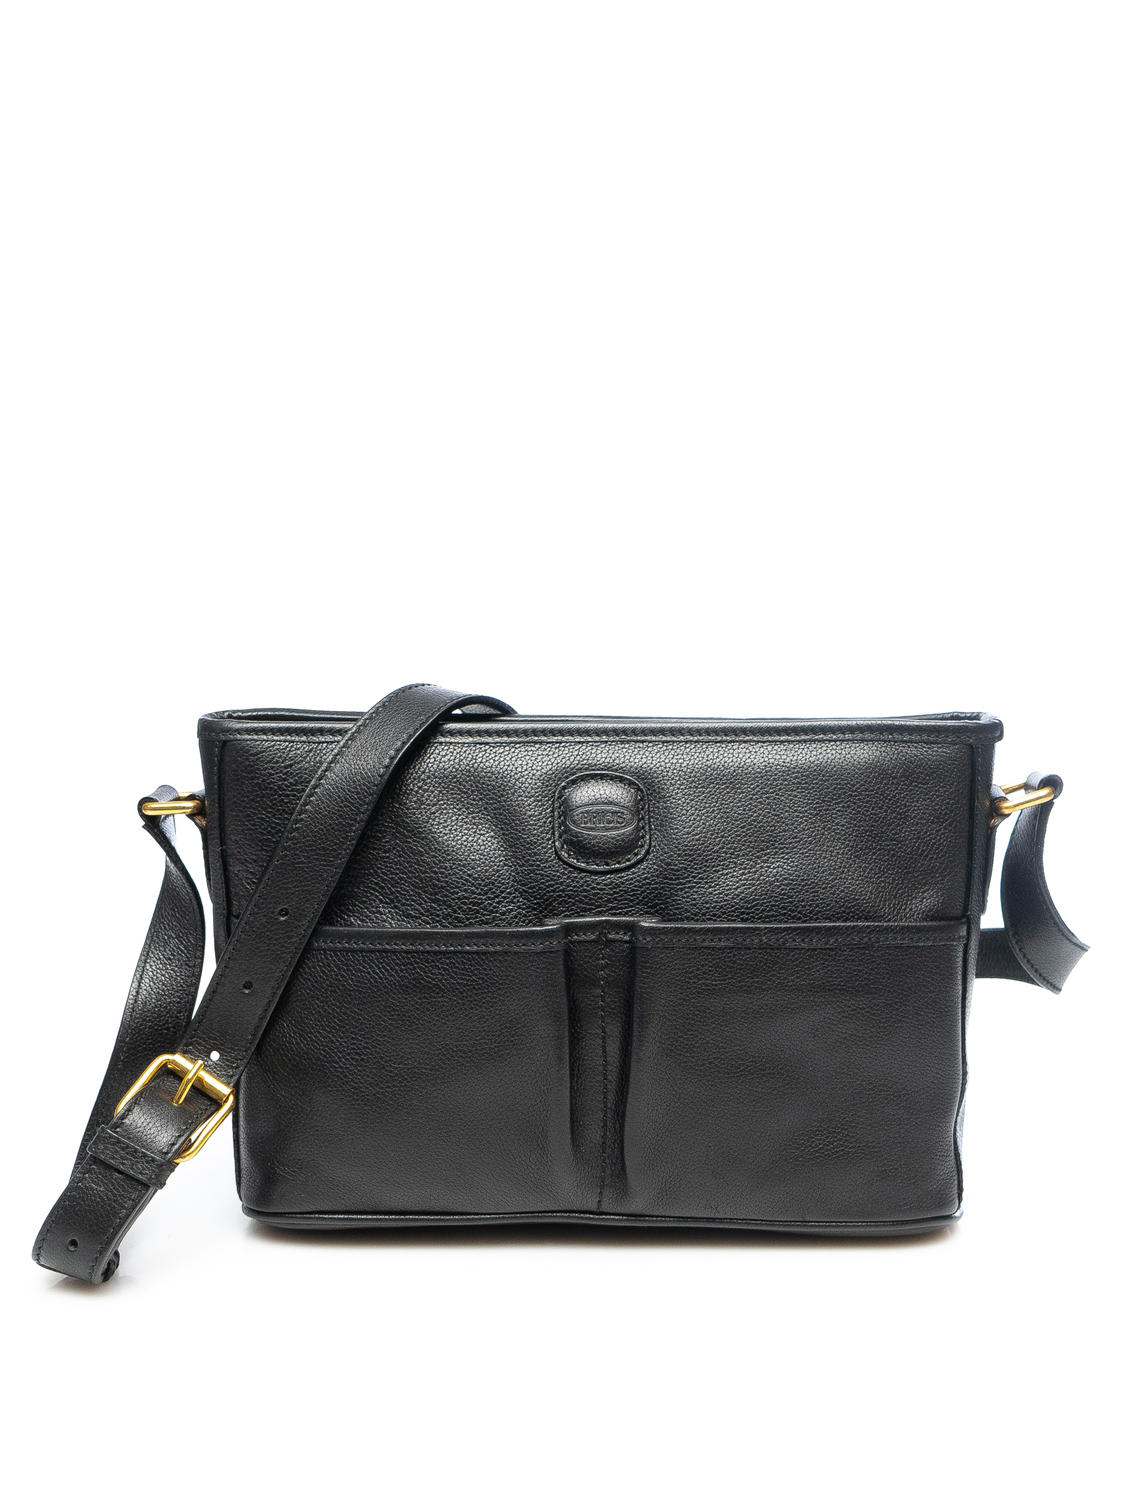 Women's Bags - LIFE Leather shoulder bag